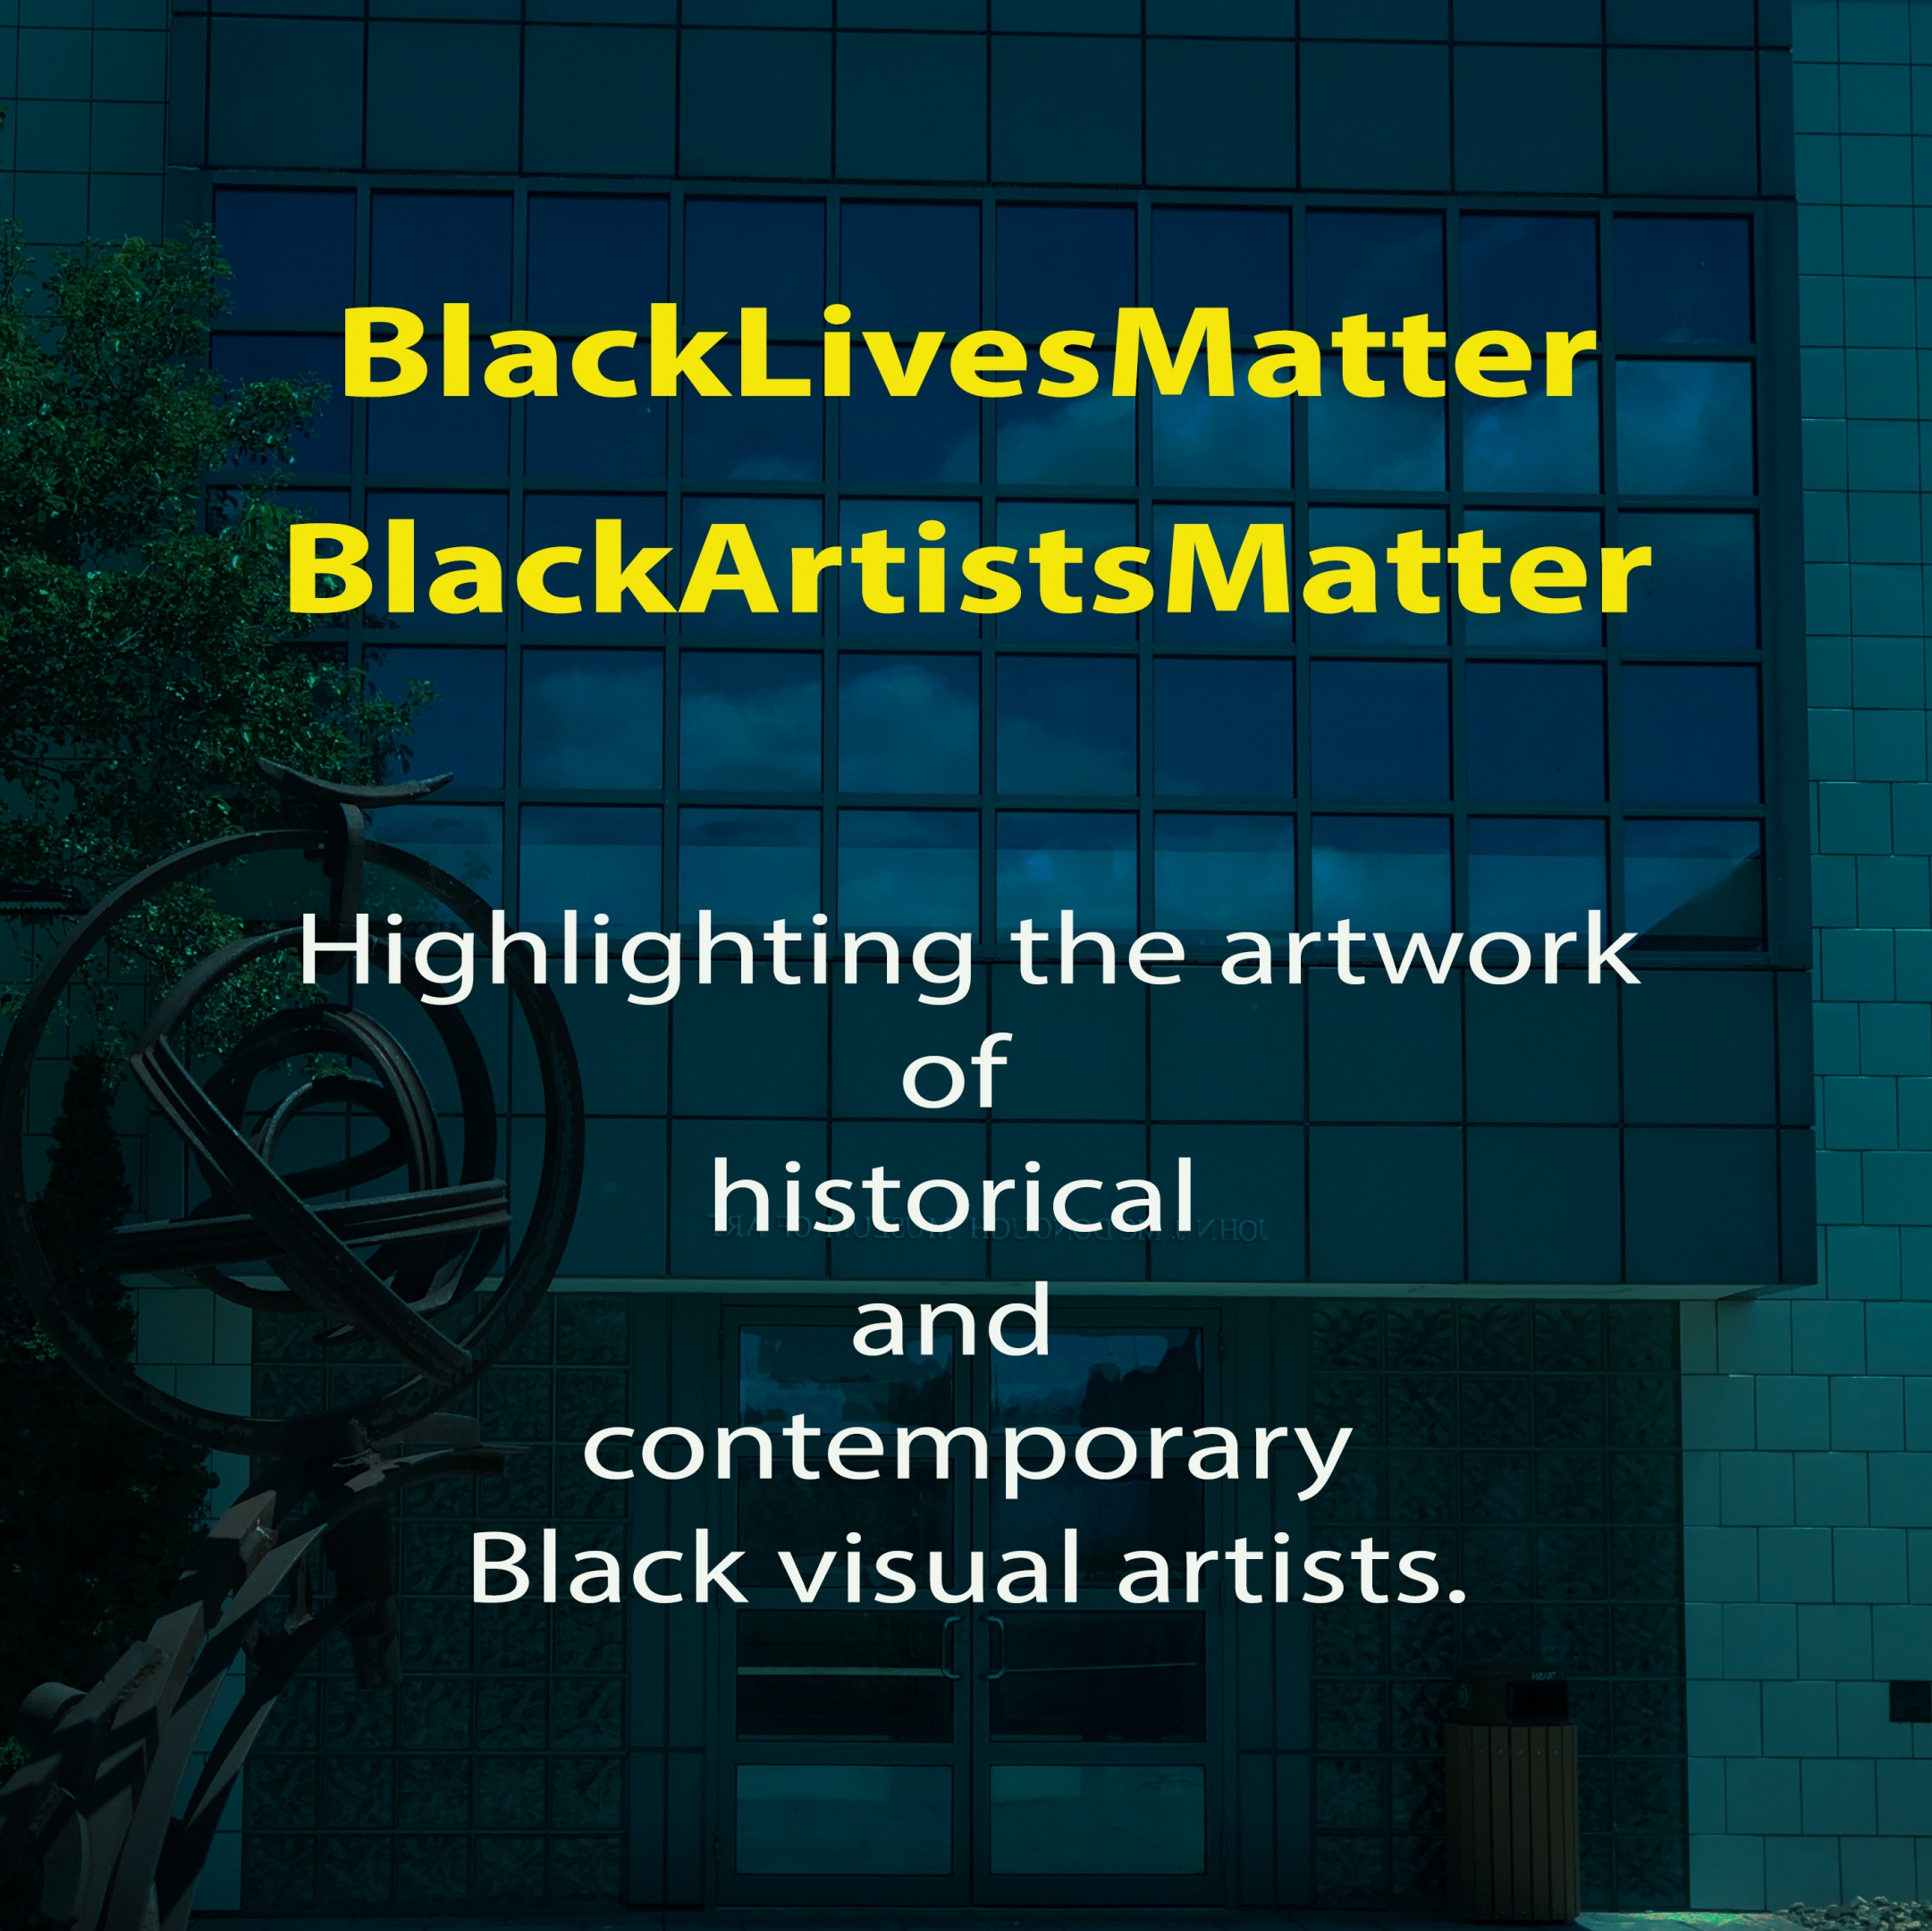 Black Lives Matter. Black Artists Matter. Highlighting the artwork of historical and contemporary Black visual artists.; Long description is located just after the image